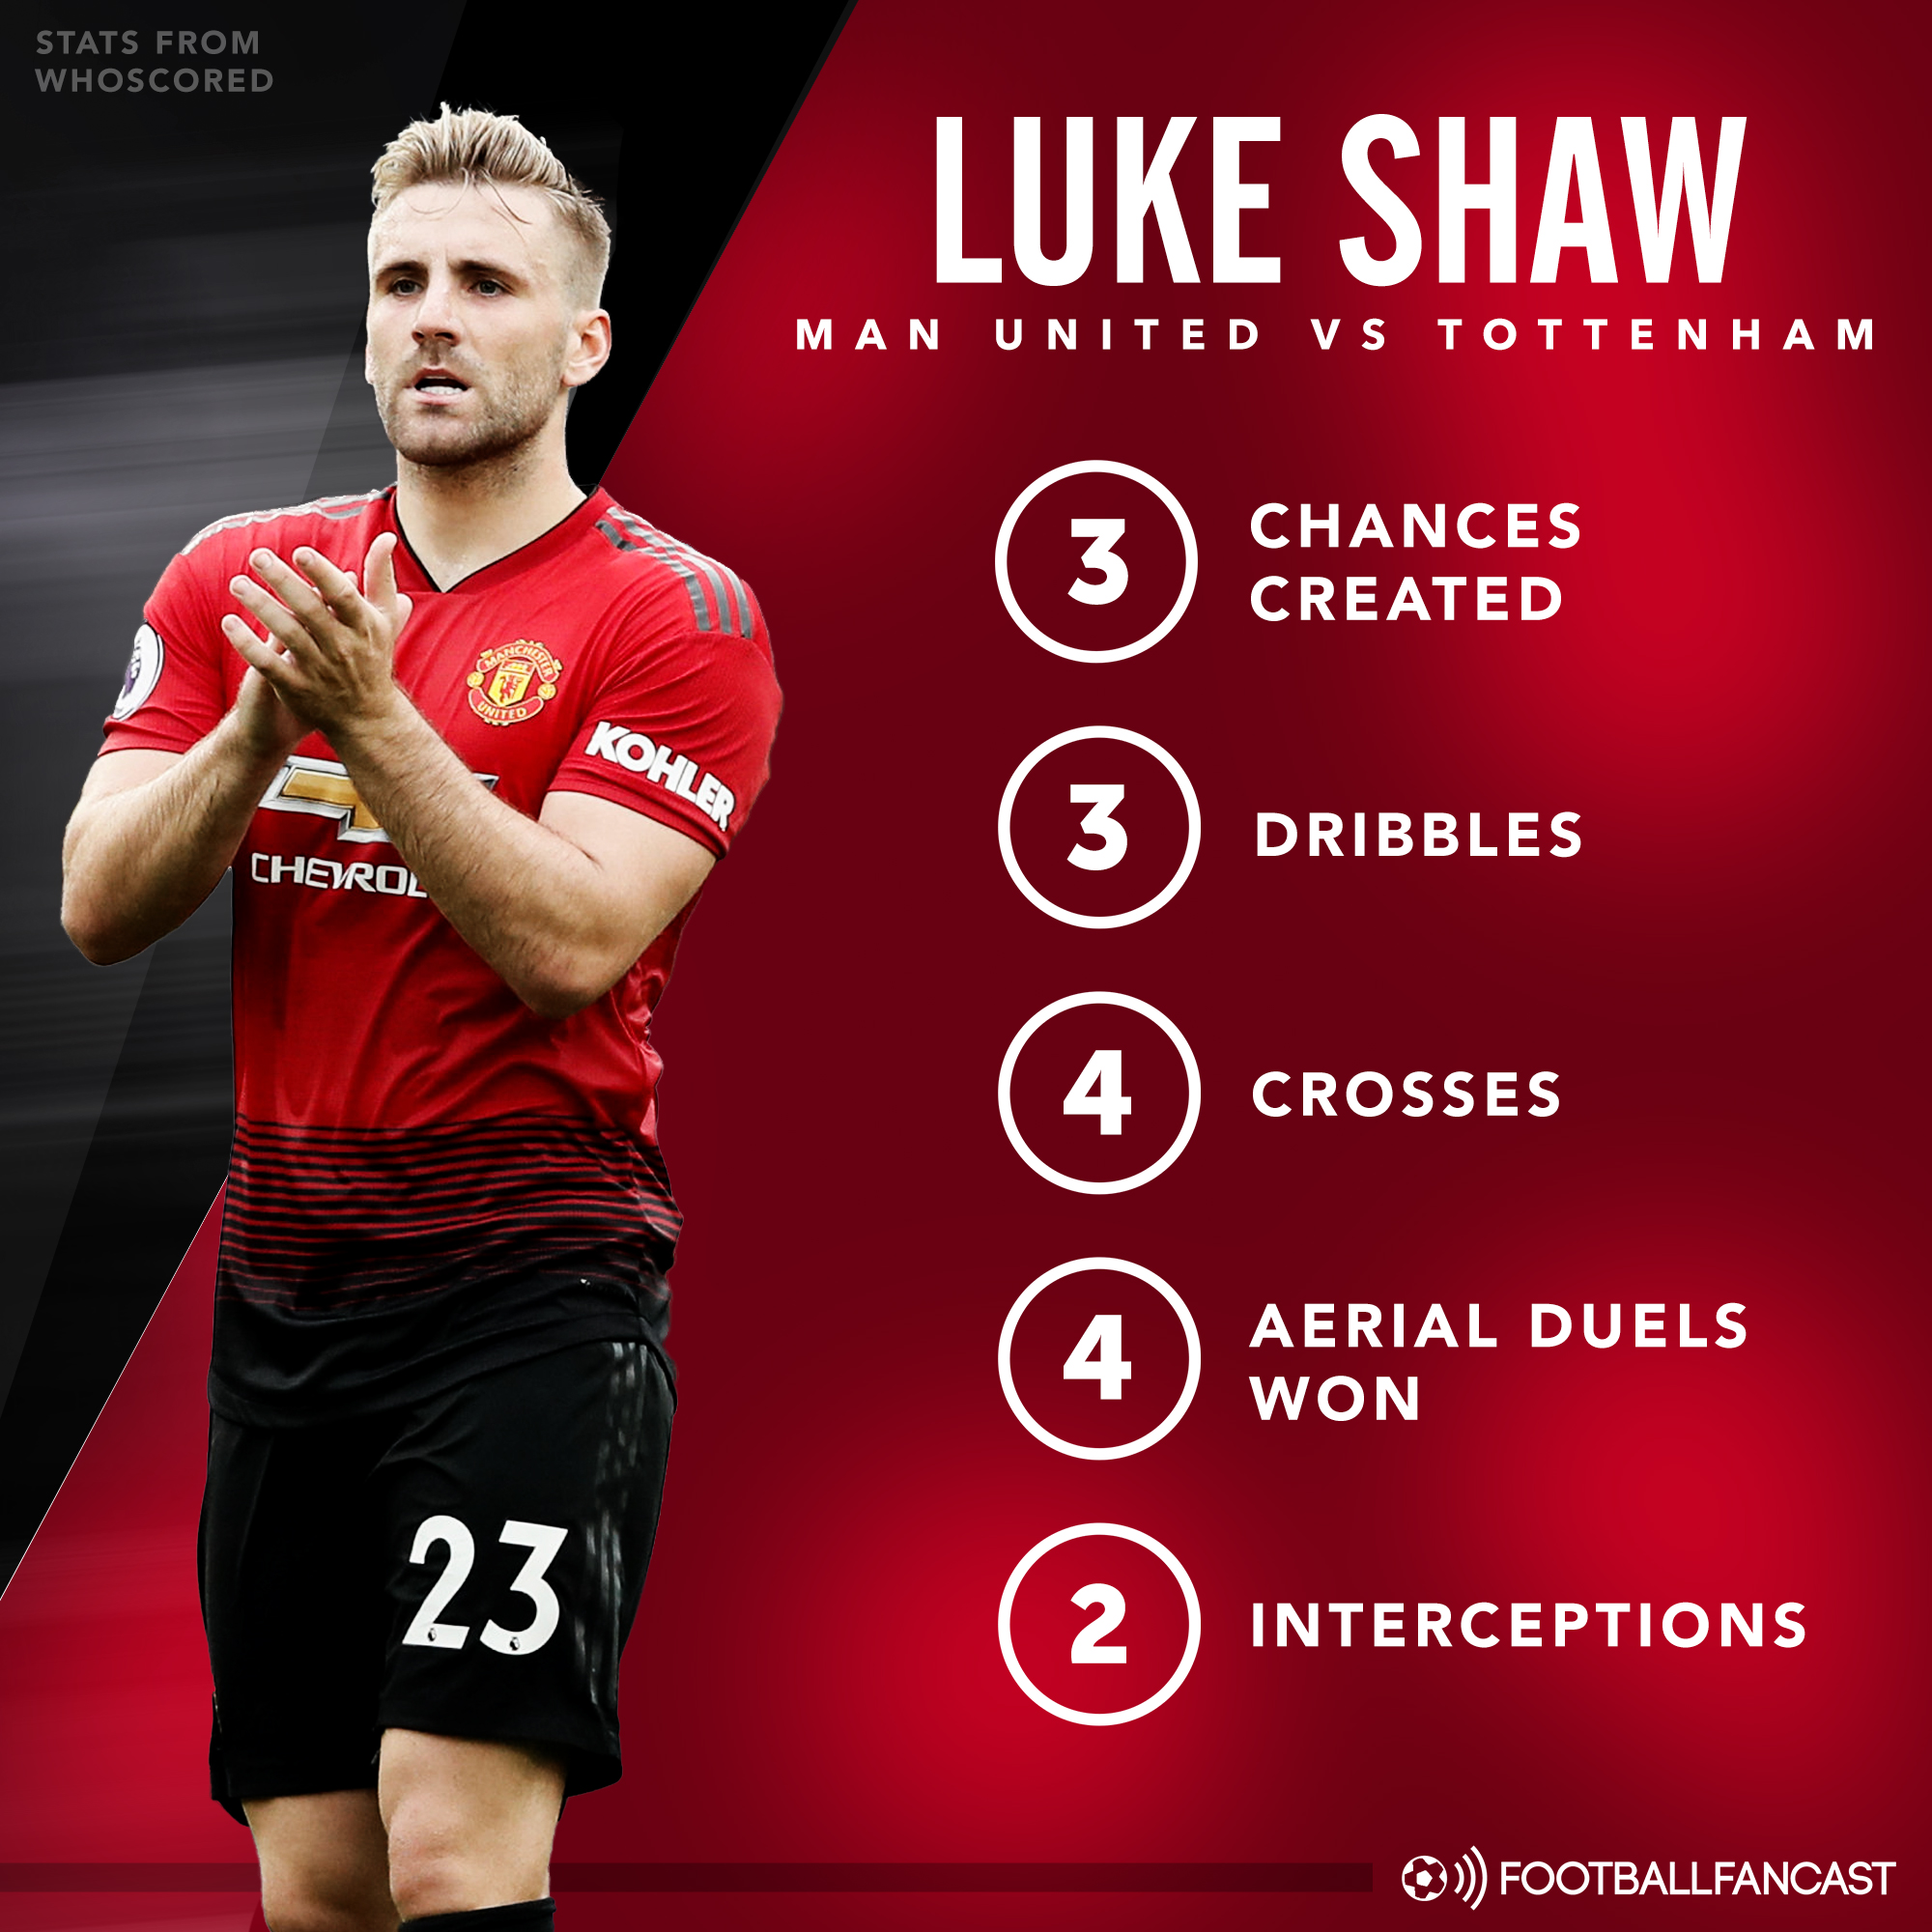 Luke-Shaw Manchester United Player Analysis